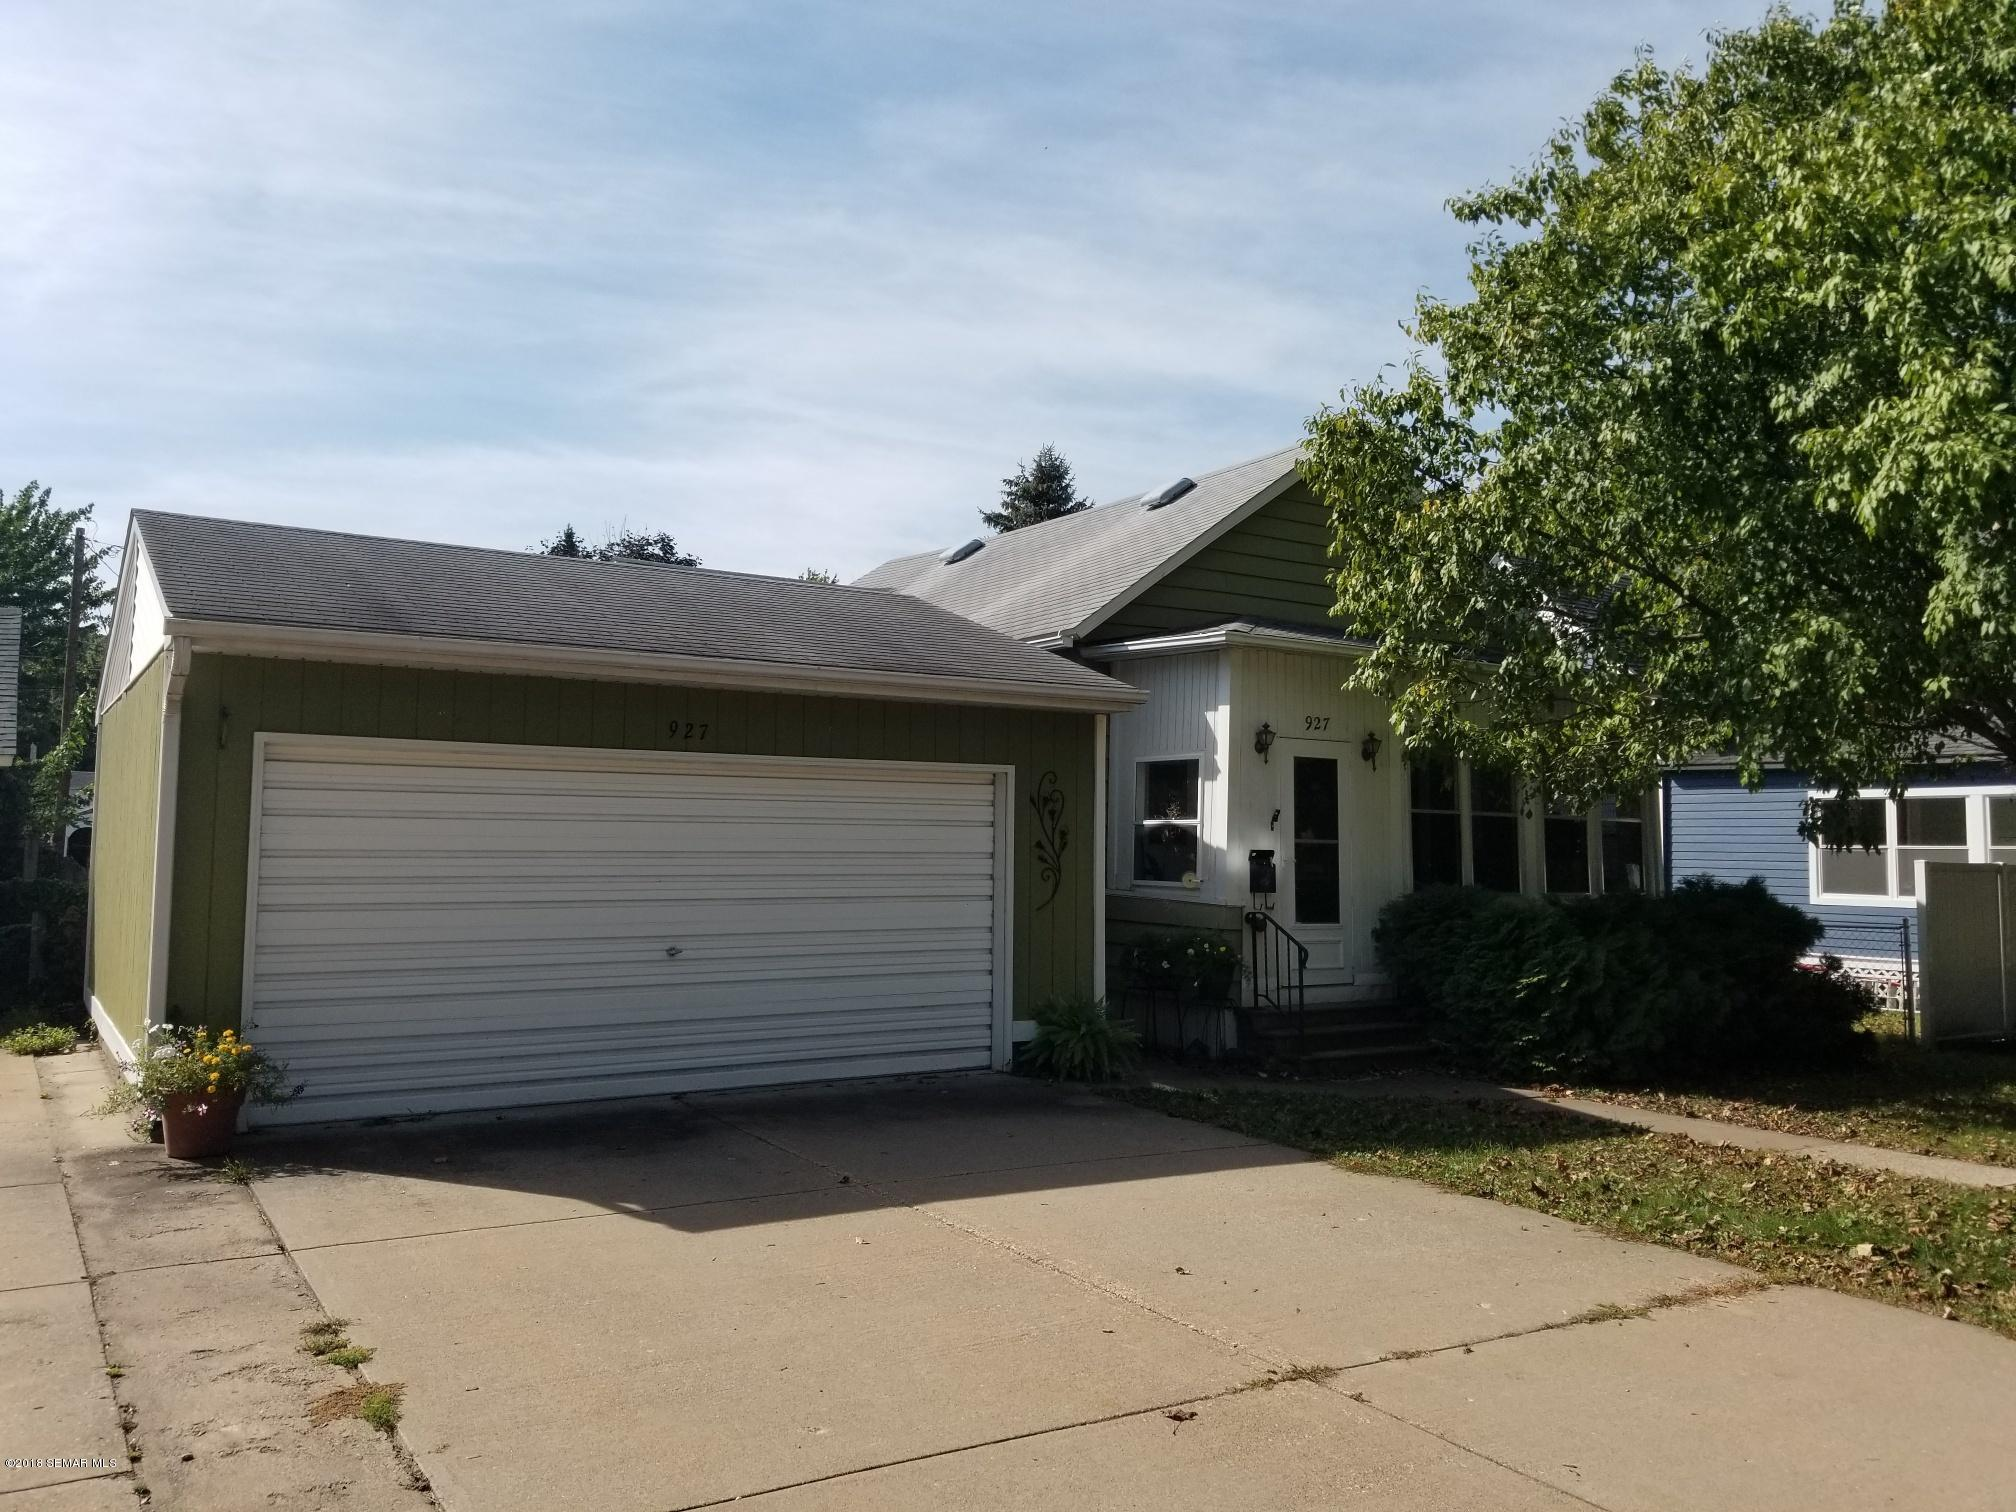 927 7th,Winona,Minnesota 55987,2 Bedrooms Bedrooms,2 BathroomsBathrooms,Single family residence,7th,4091402